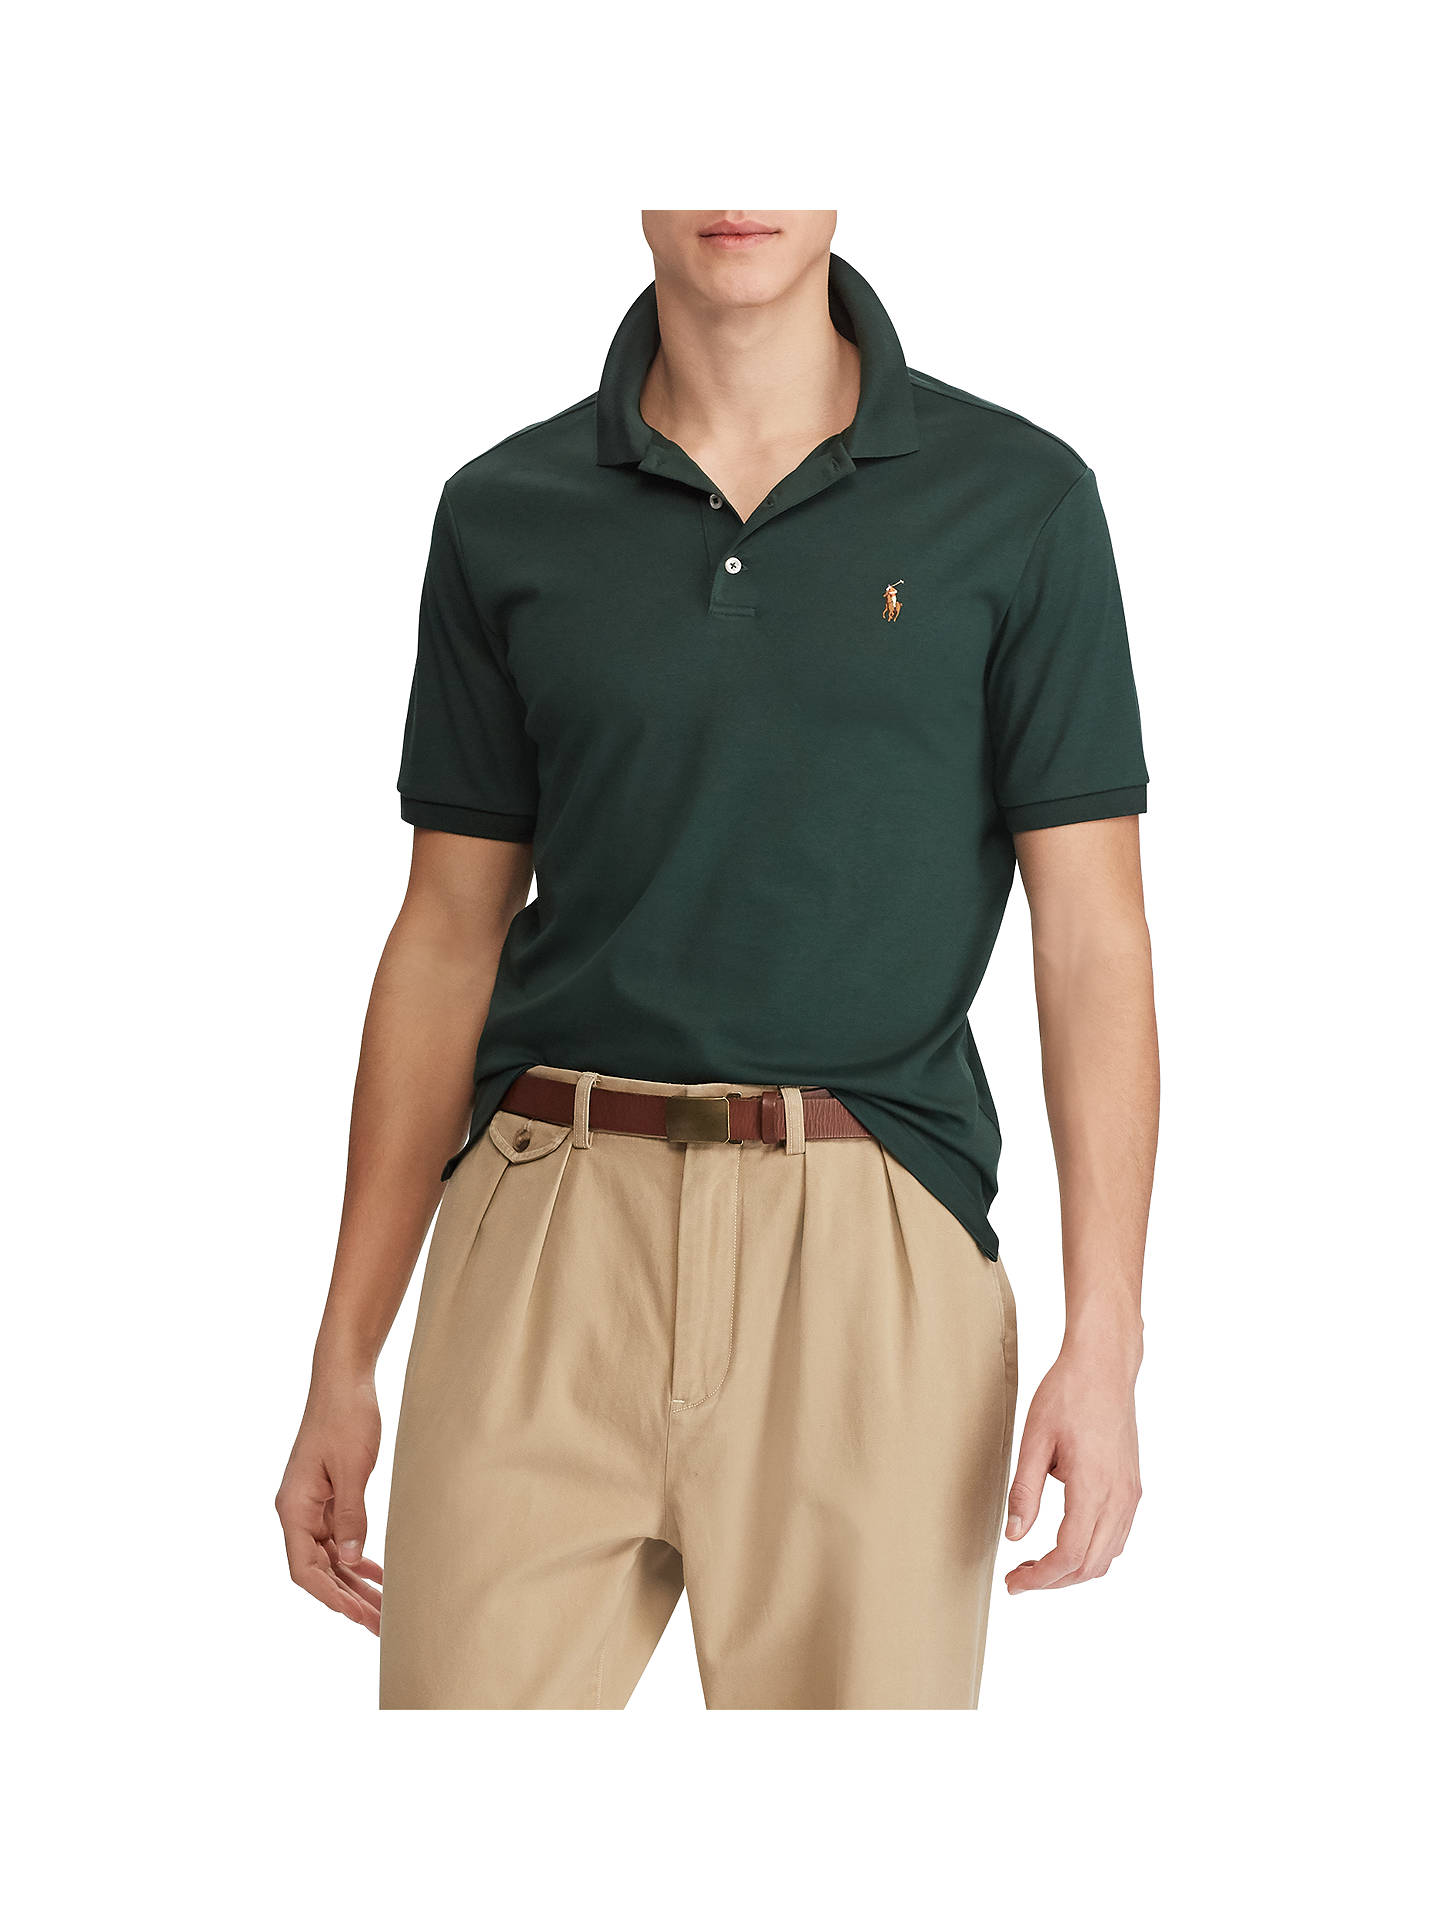 BuyPolo Ralph Lauren Slim Fit Polo Shirt, College Green, S Online at  johnlewis. 2c3ac8a1f8